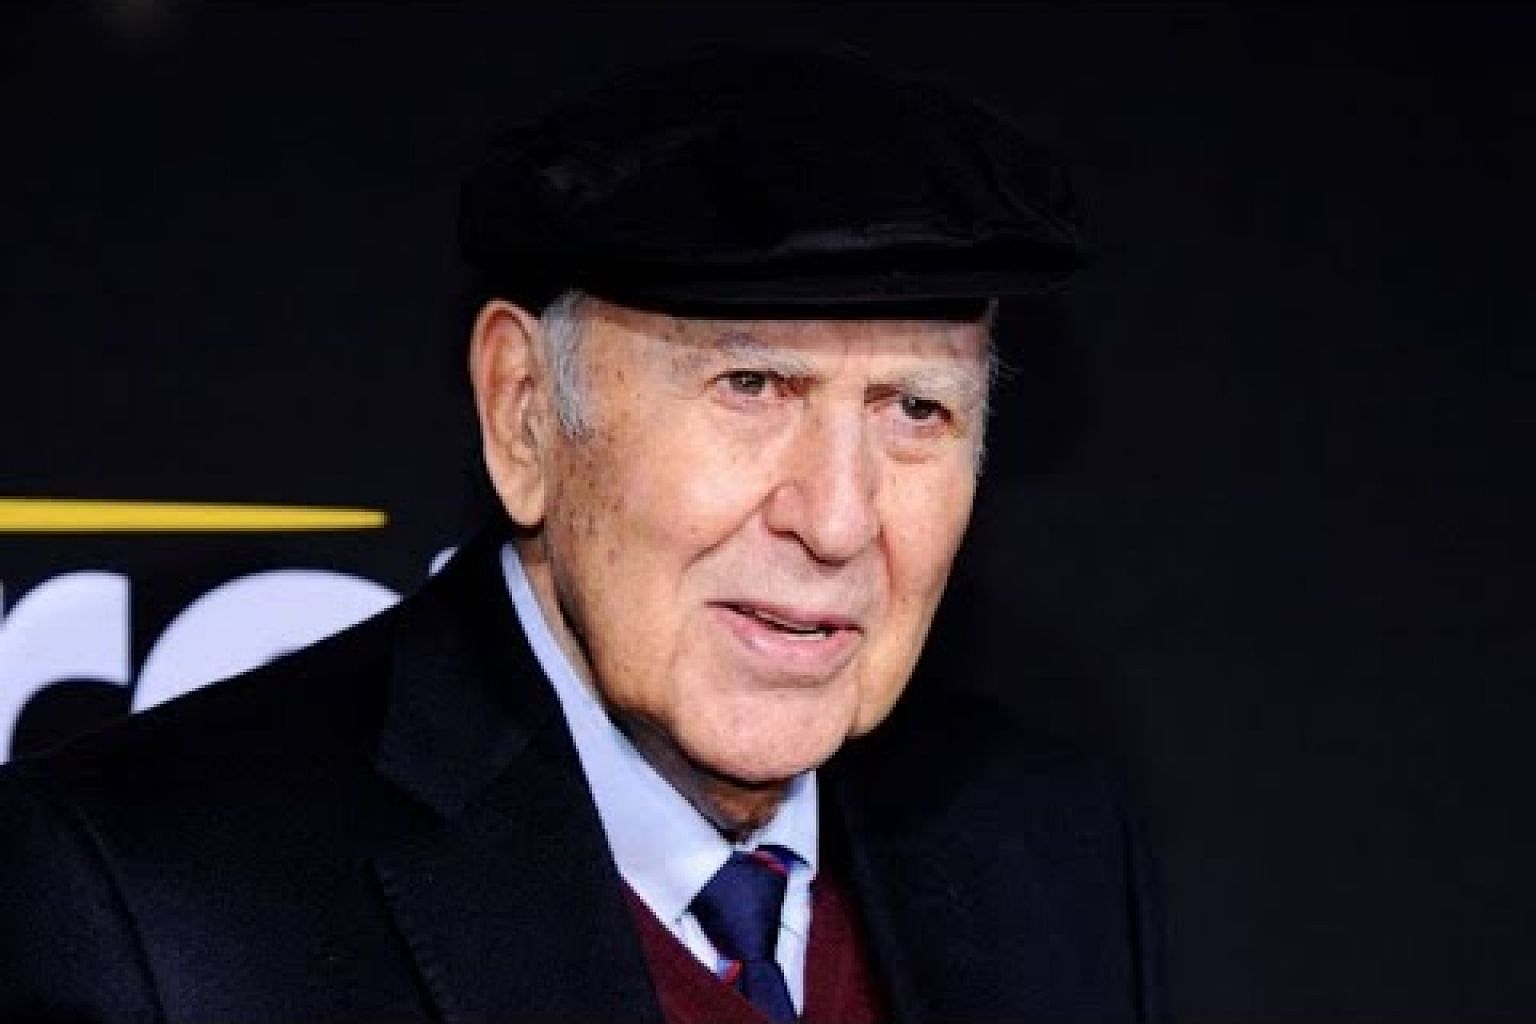 Remembering comedy icon Carl Reiner, dead at 98